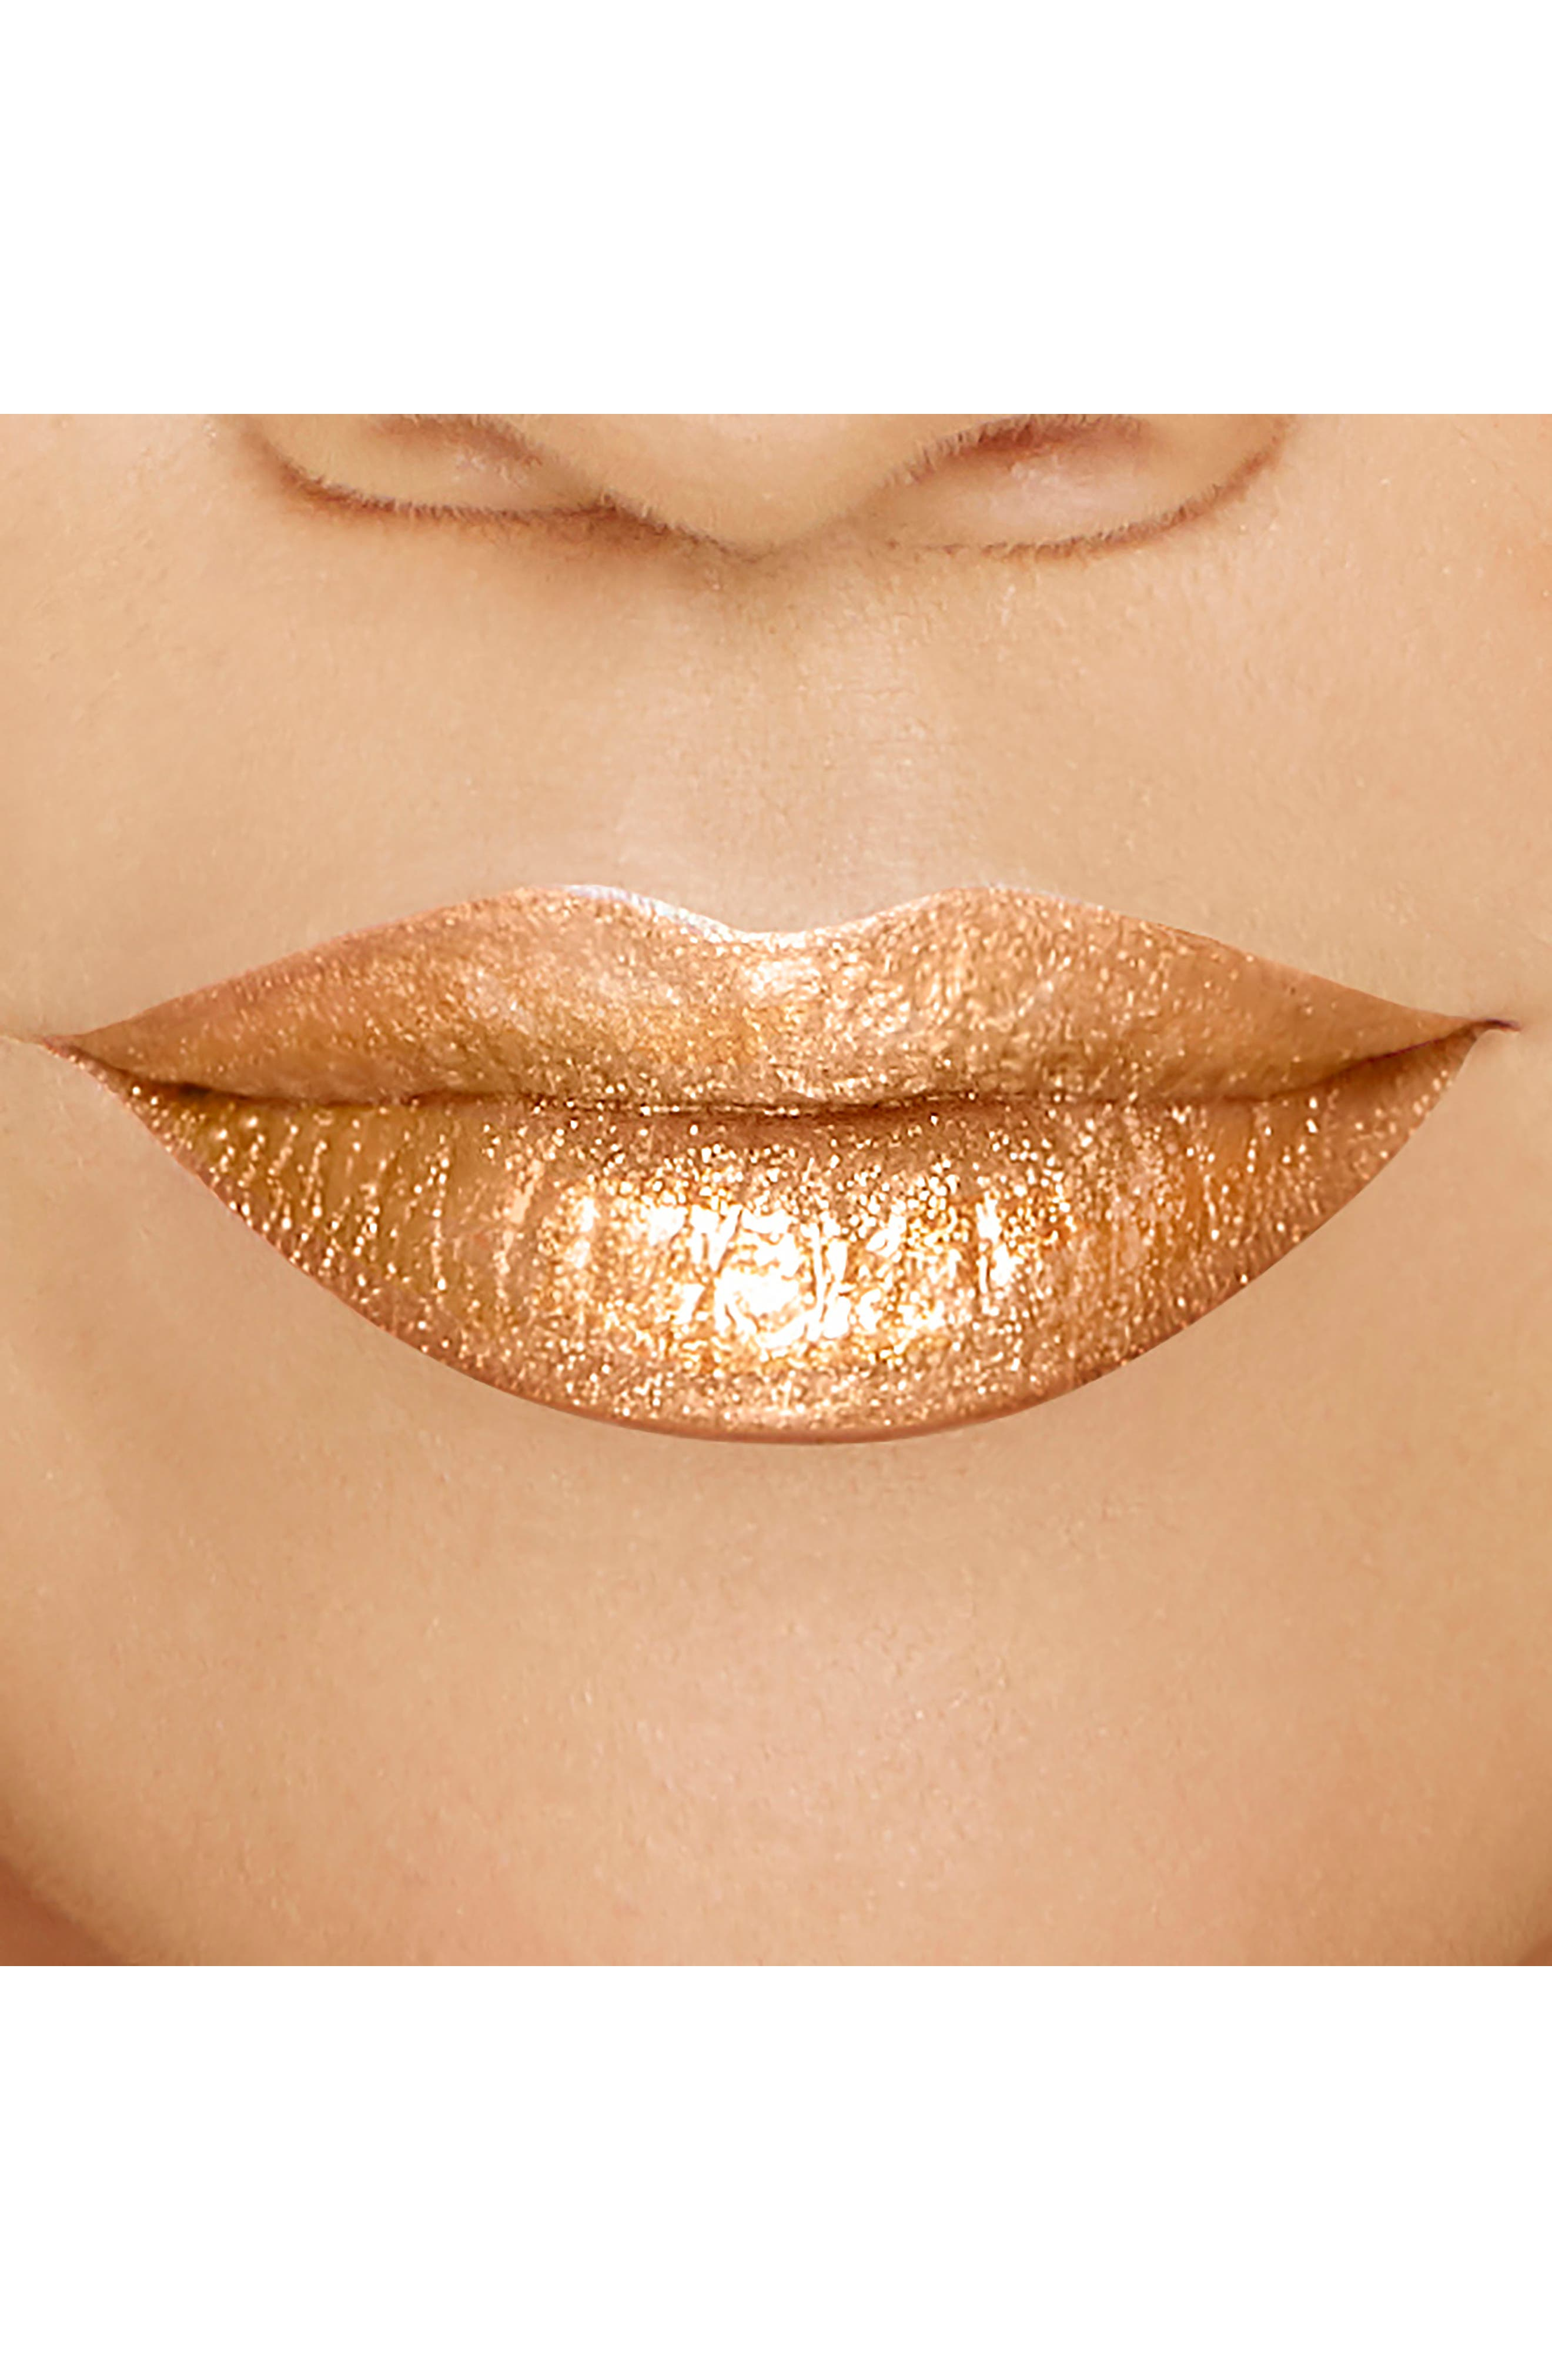 Melted Gold Liquified Gold Lip Gloss,                             Alternate thumbnail 5, color,                             GOLD